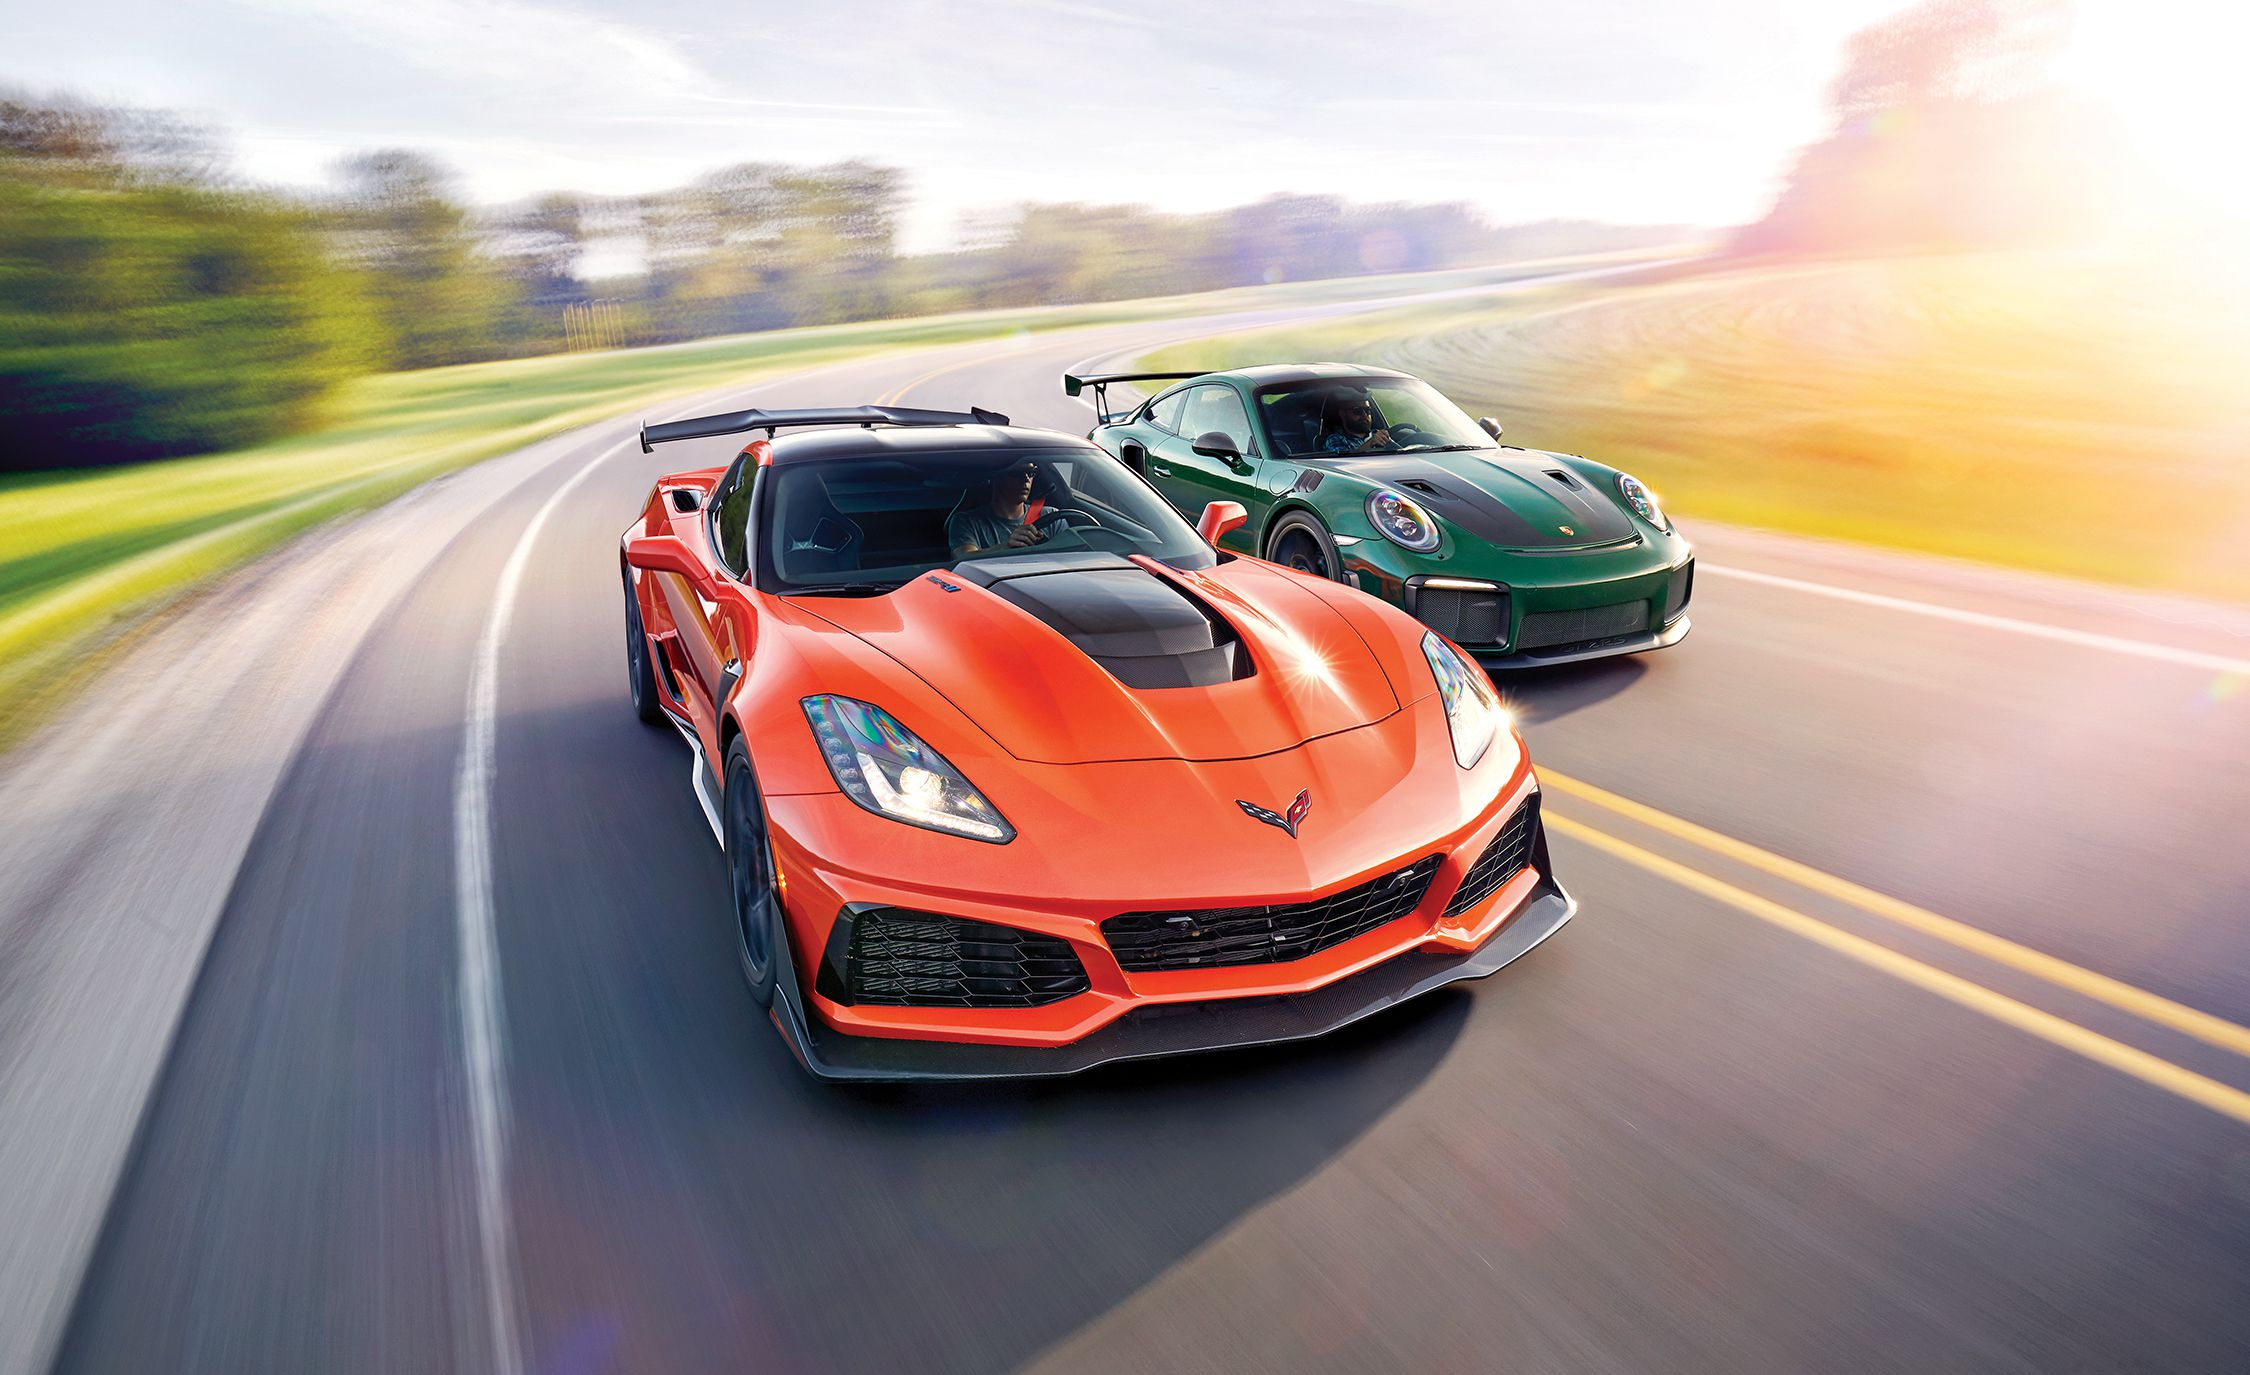 2019 Chevrolet Corvette ZR1 and 2018 Porsche 911 GT2 RS Front Wallpapers (1)